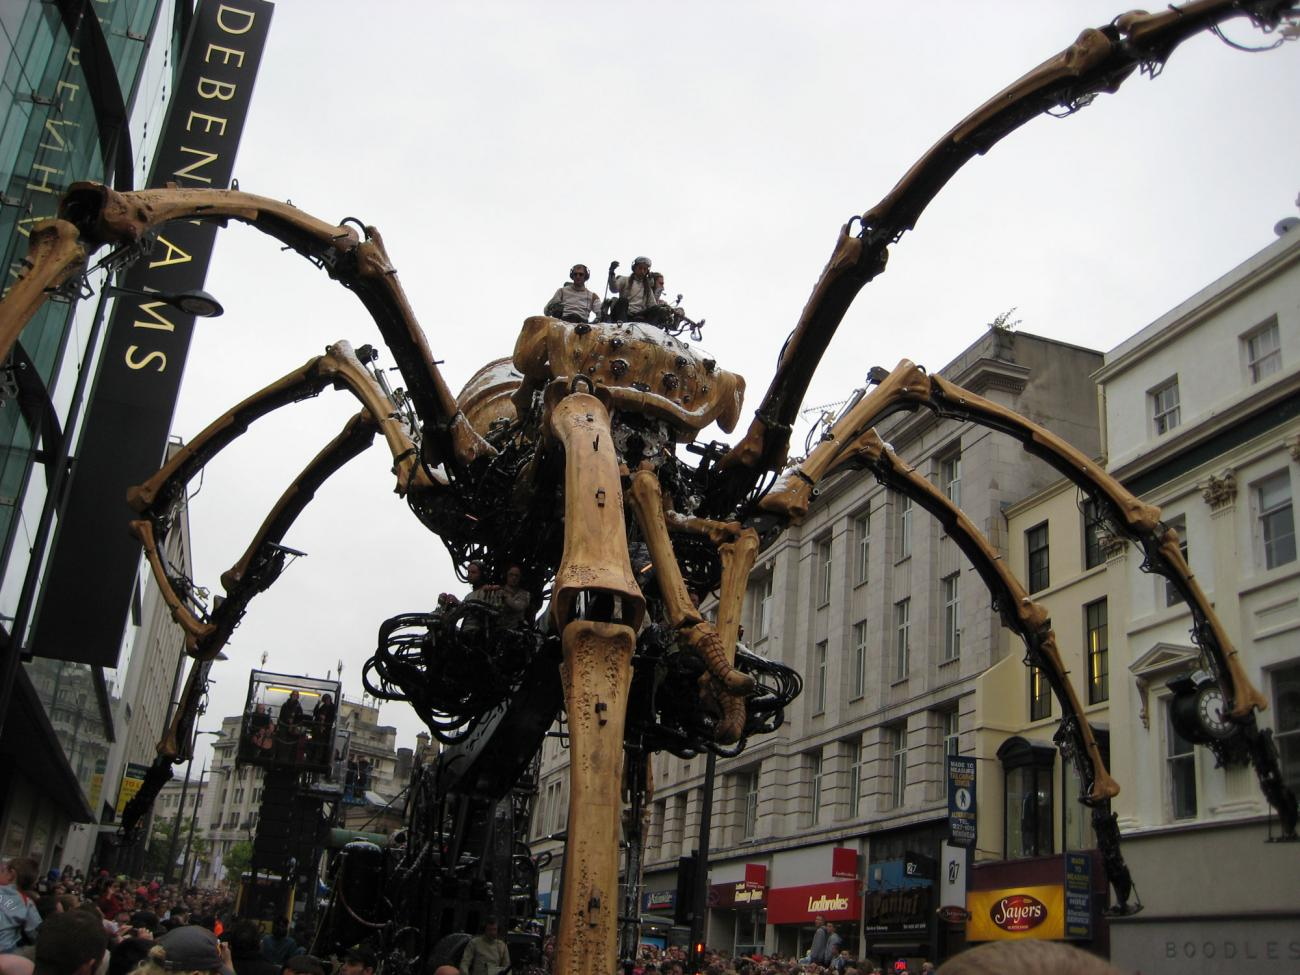 The day a giant spider came to the City...